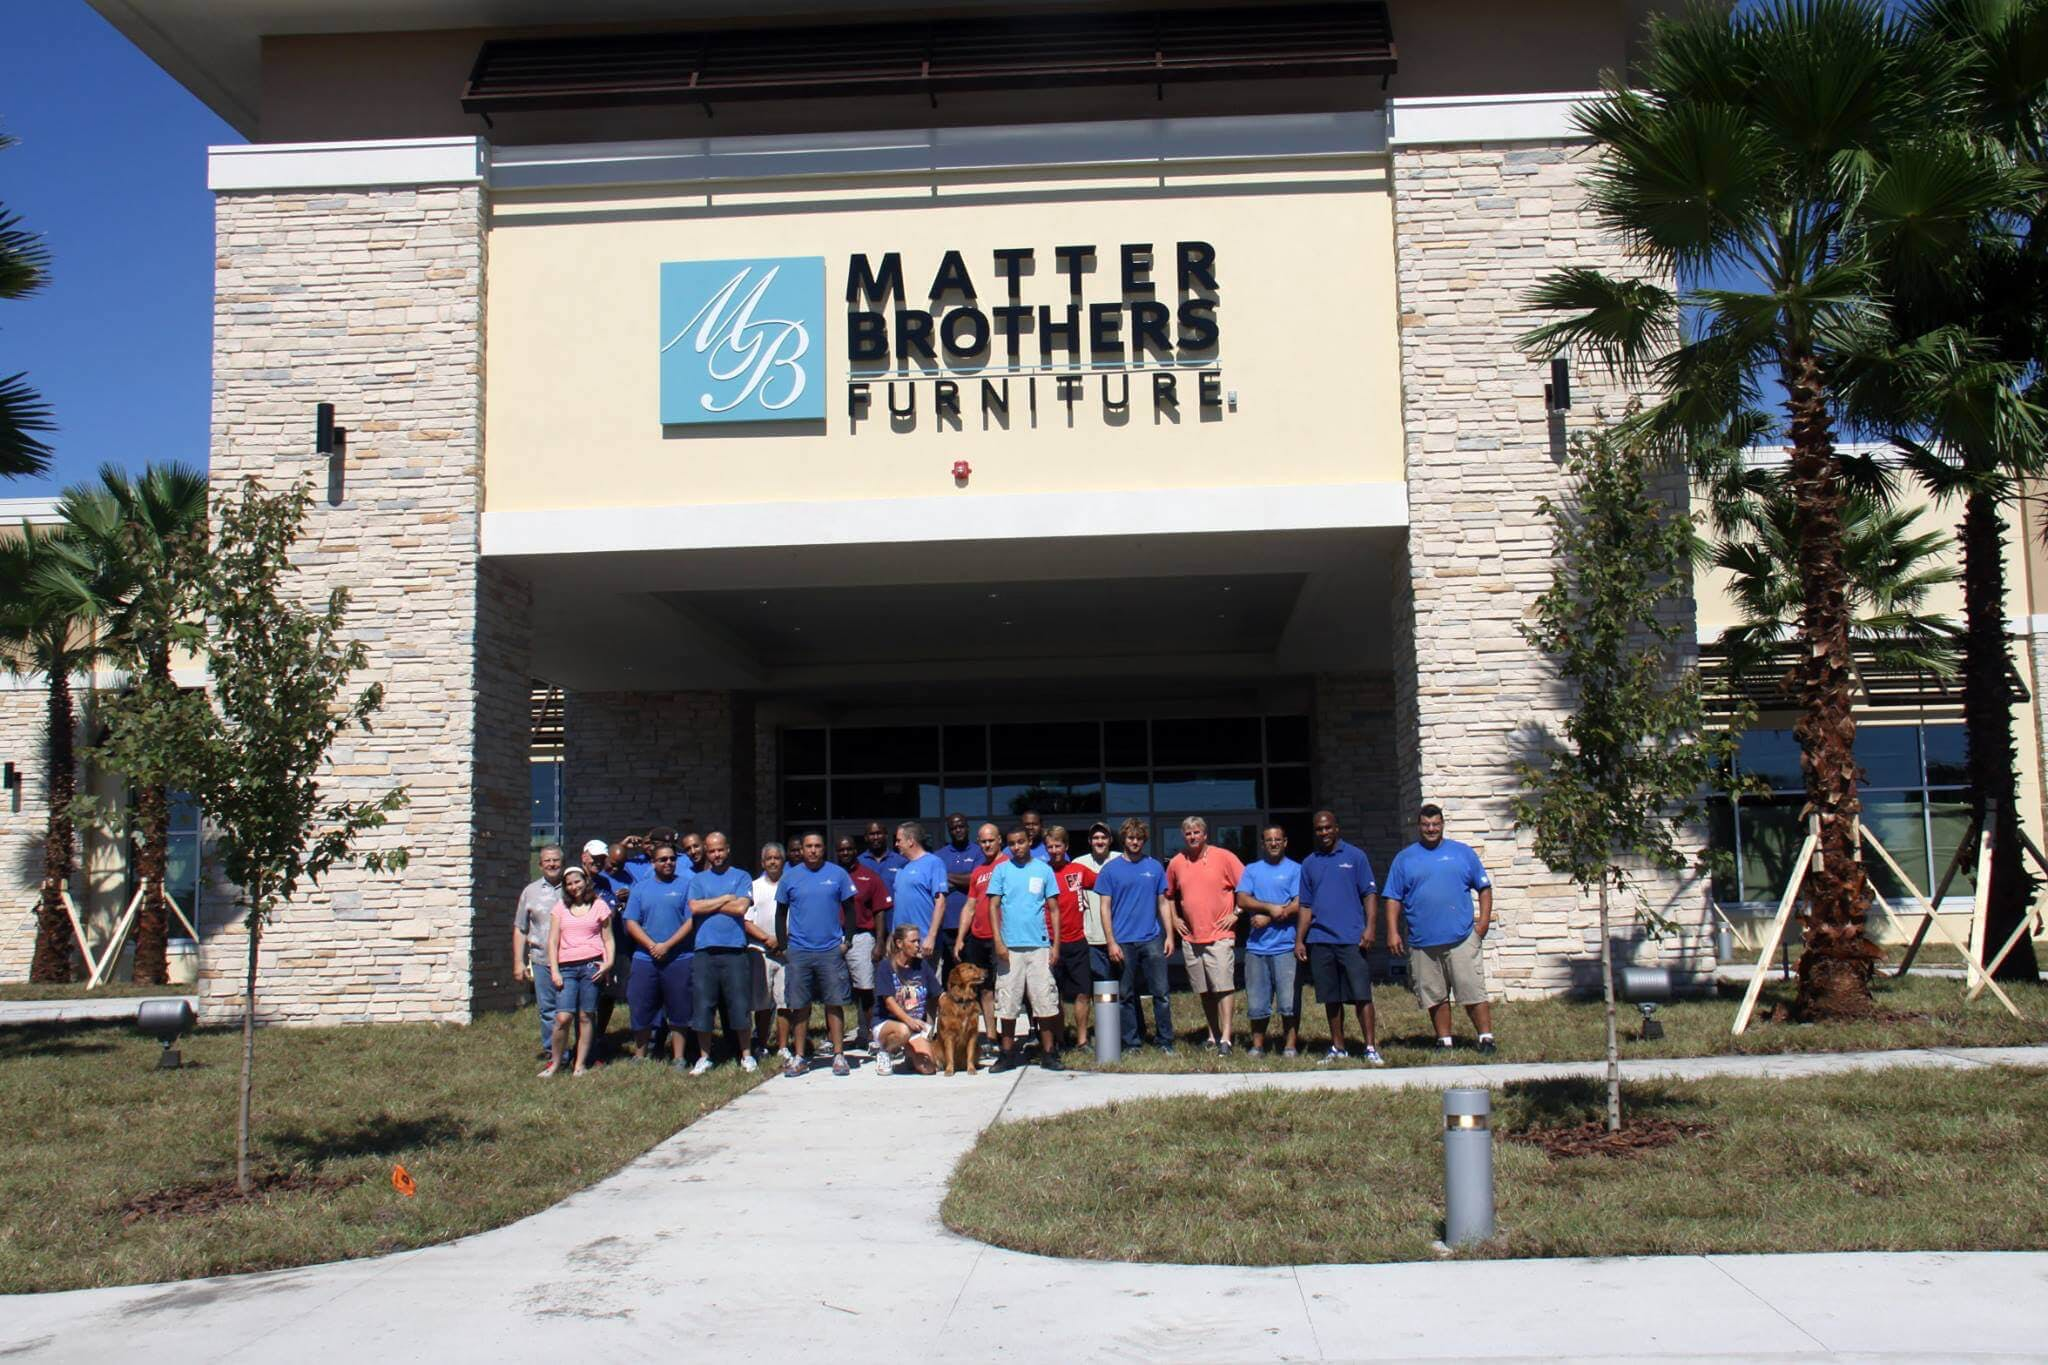 Employment Opportunities At Matter Brothers Furniture